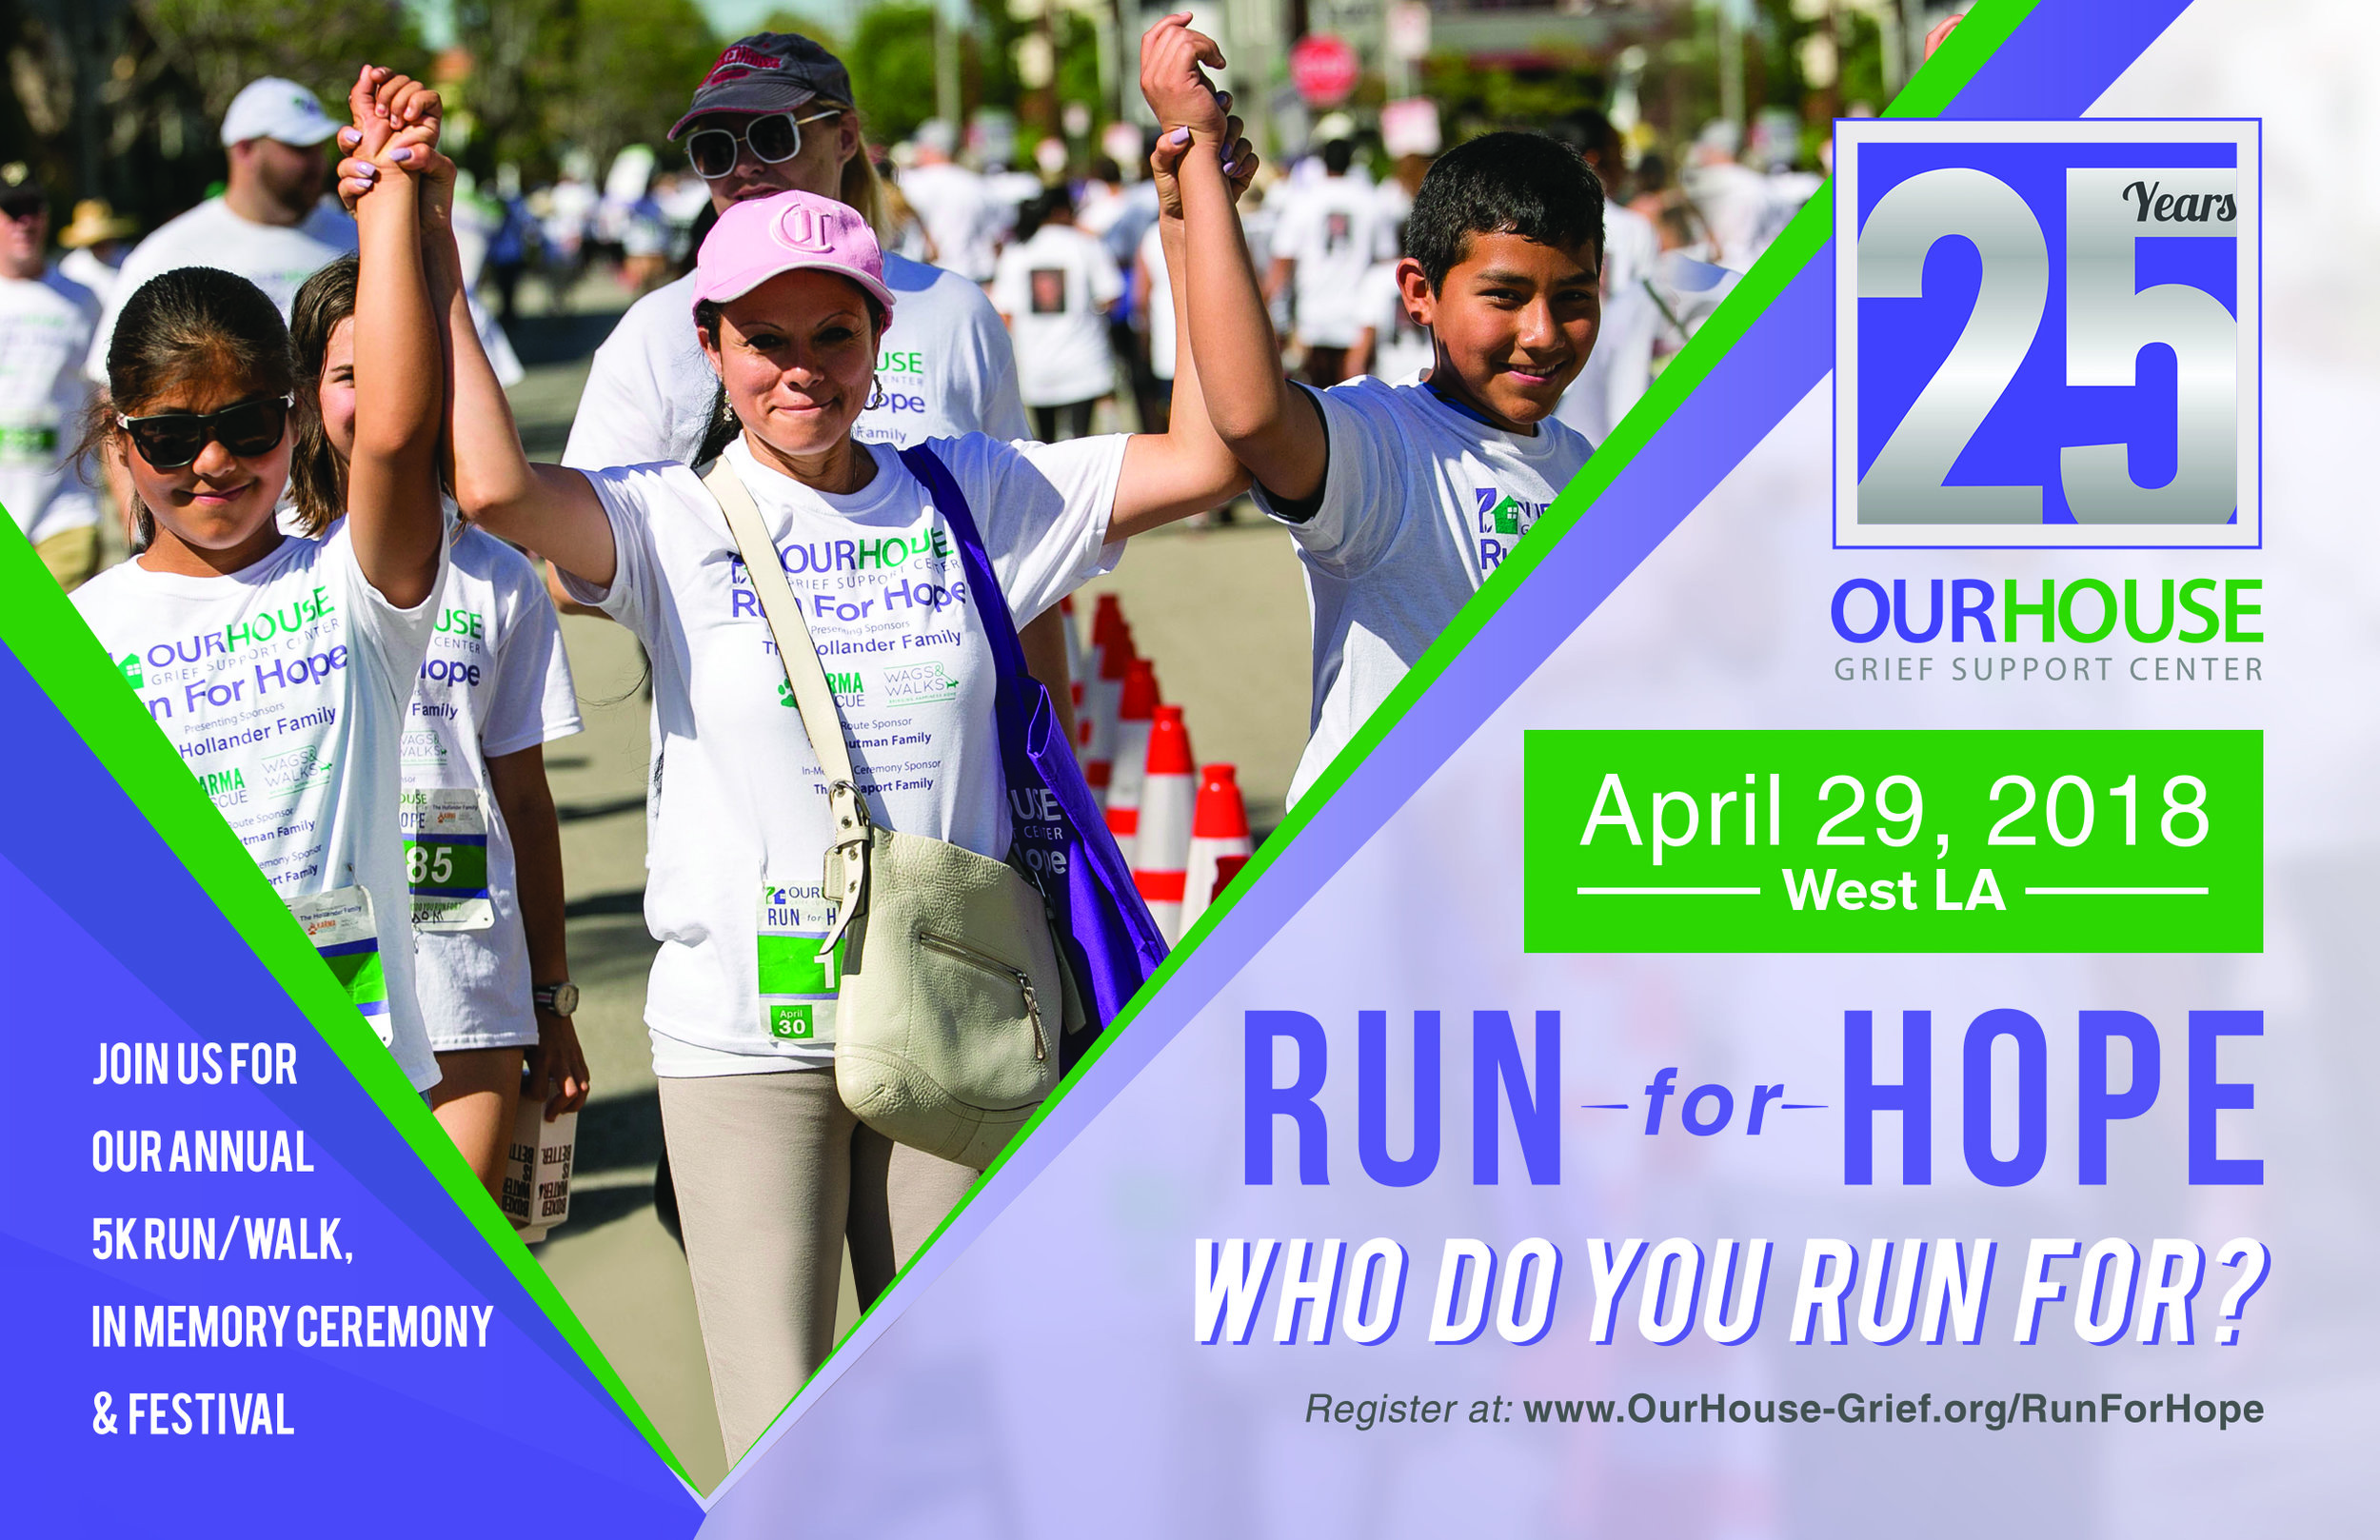 OH-Run-For-Hope-Front-2018-final-no-WLANC-logo.jpg